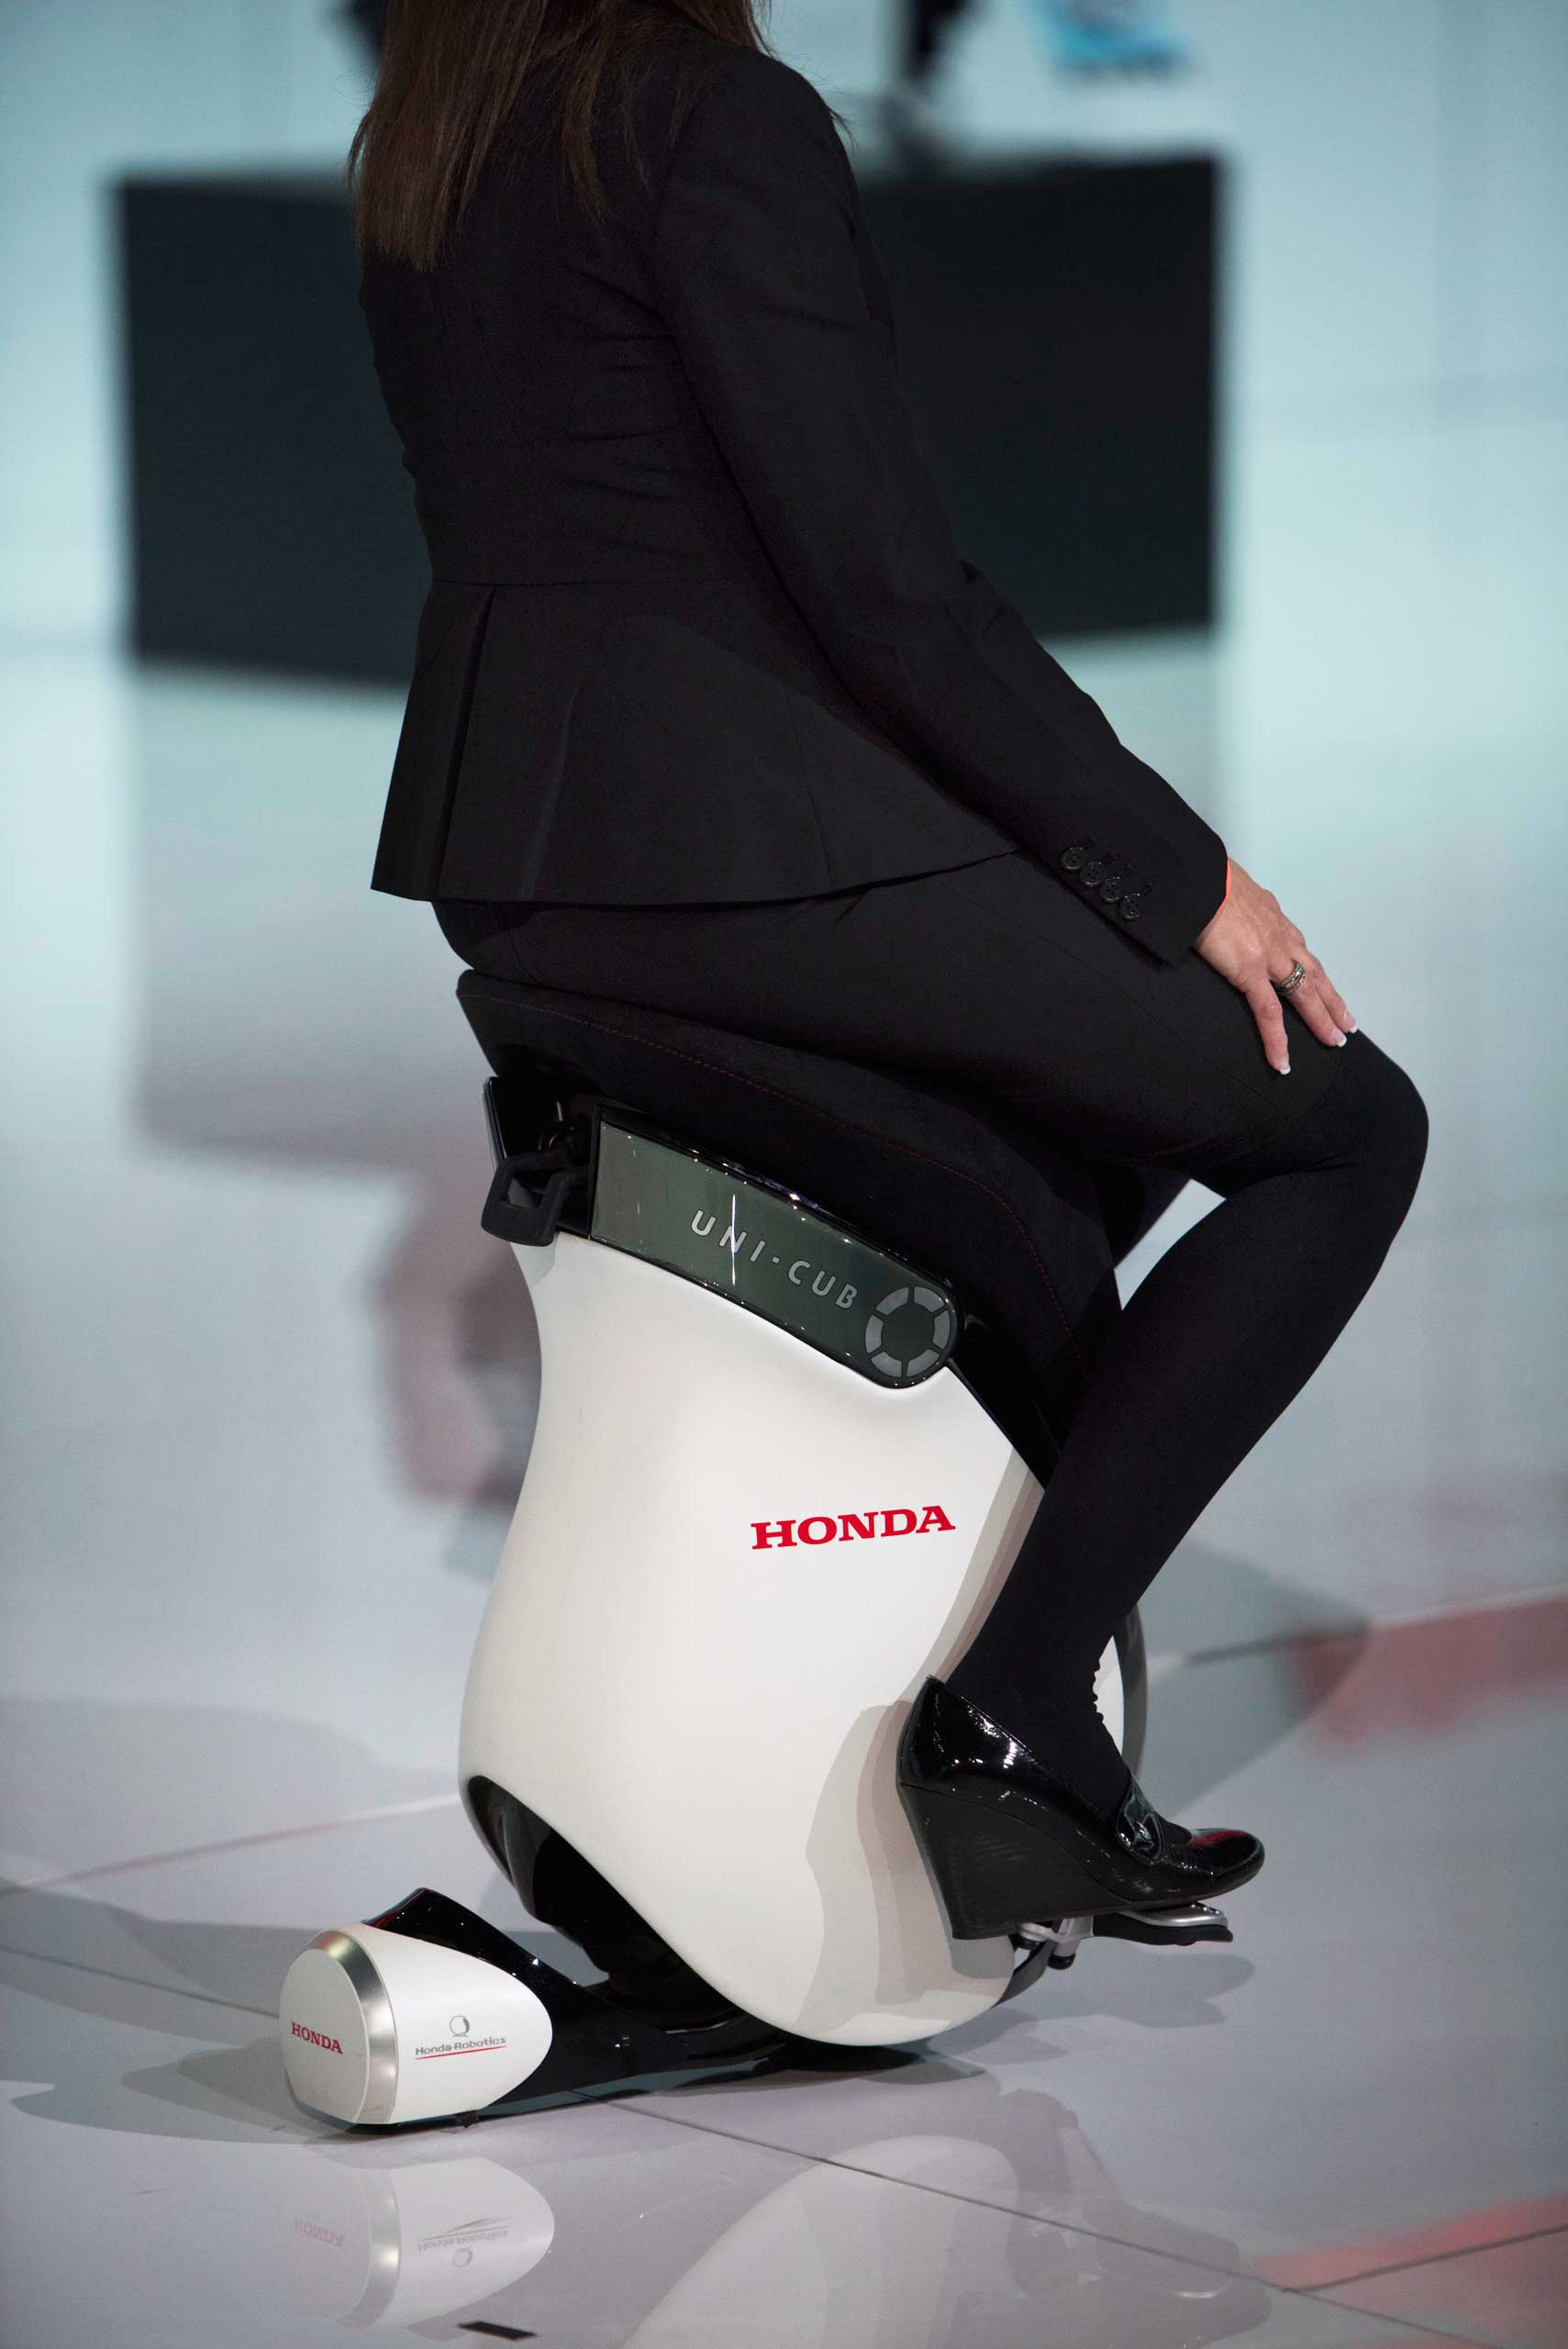 The Honda Motor Co. UNI-CUB B personal mobility device is demonstrated on Jan. 13, 2015 in Detroit.